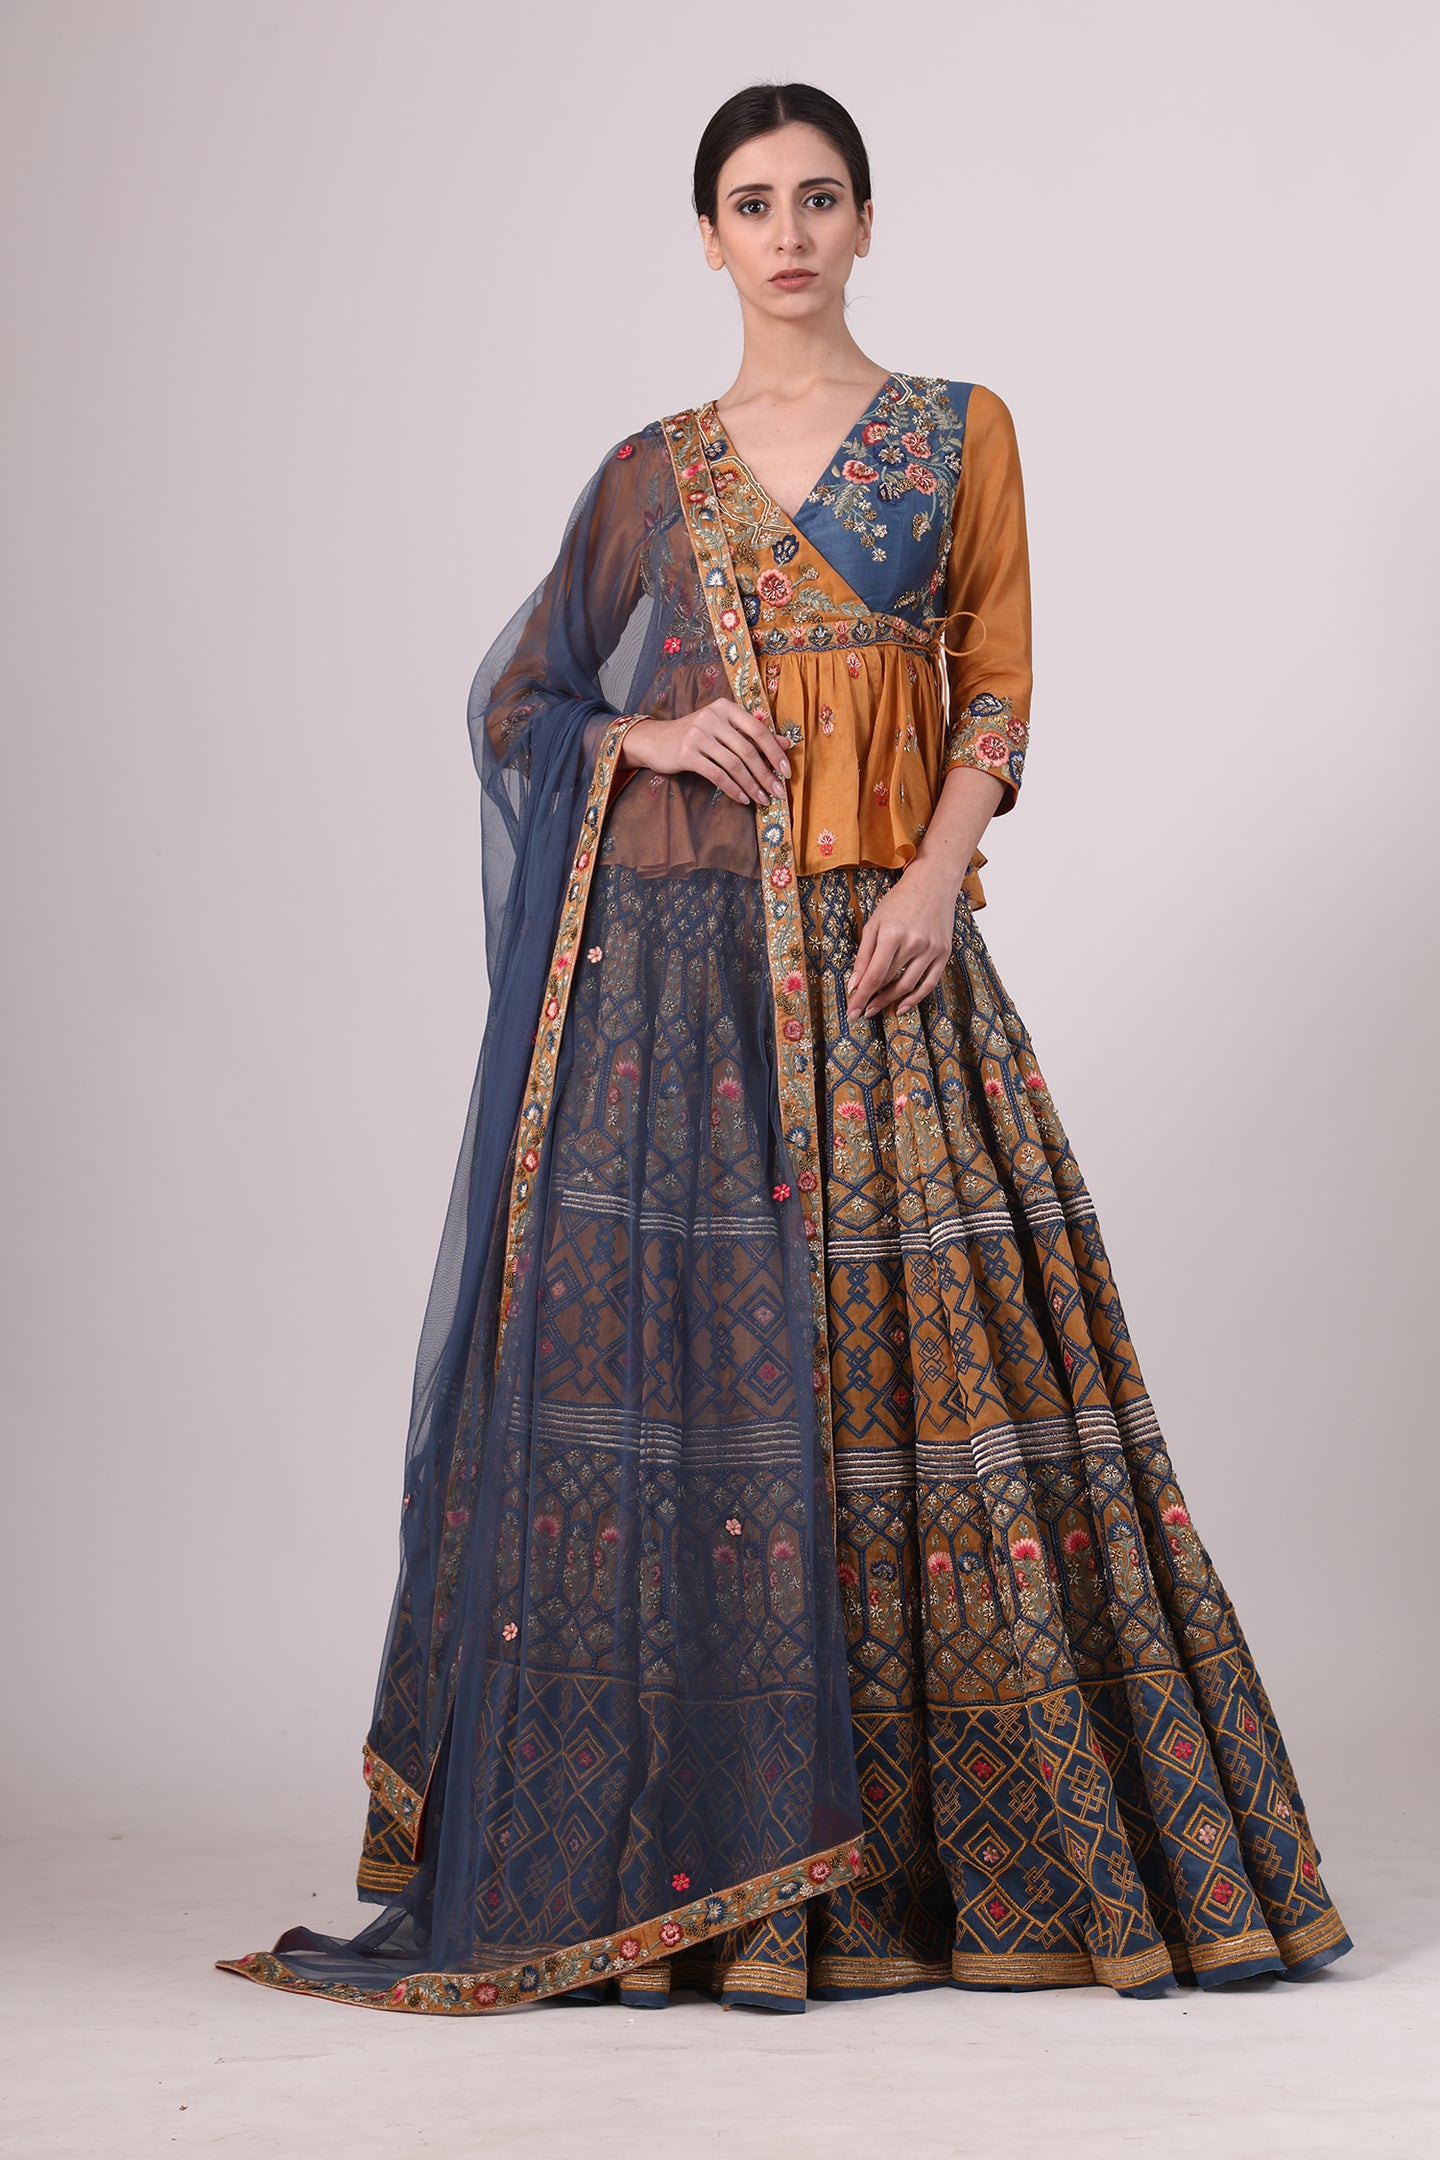 Embroidered Angarakha Blouse, Lehenga & Dupatta set. - The Grand Trunk